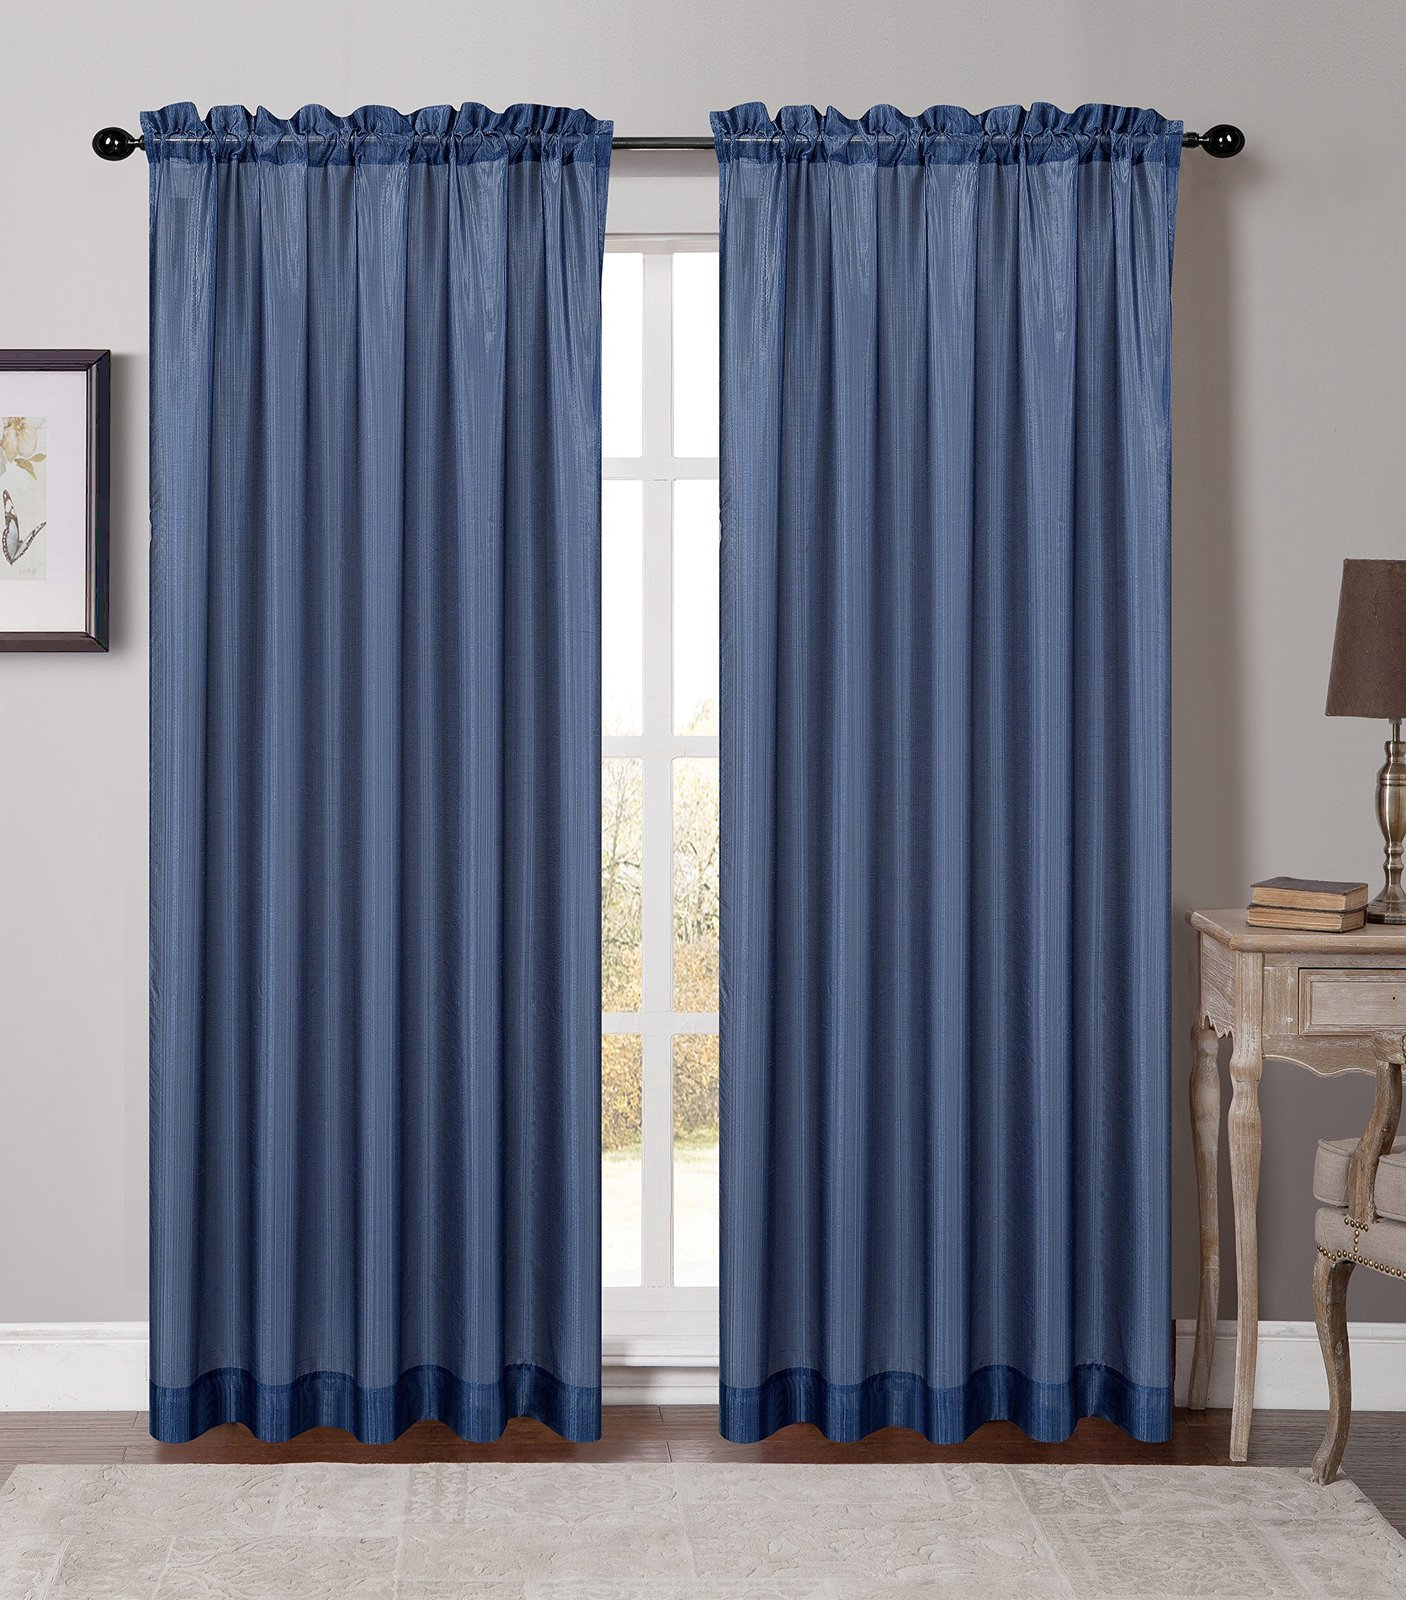 Urbanest 54-inch by 96-inch Set of 2 Soho Sheer Drapery Curtain Panel, Blue image 2